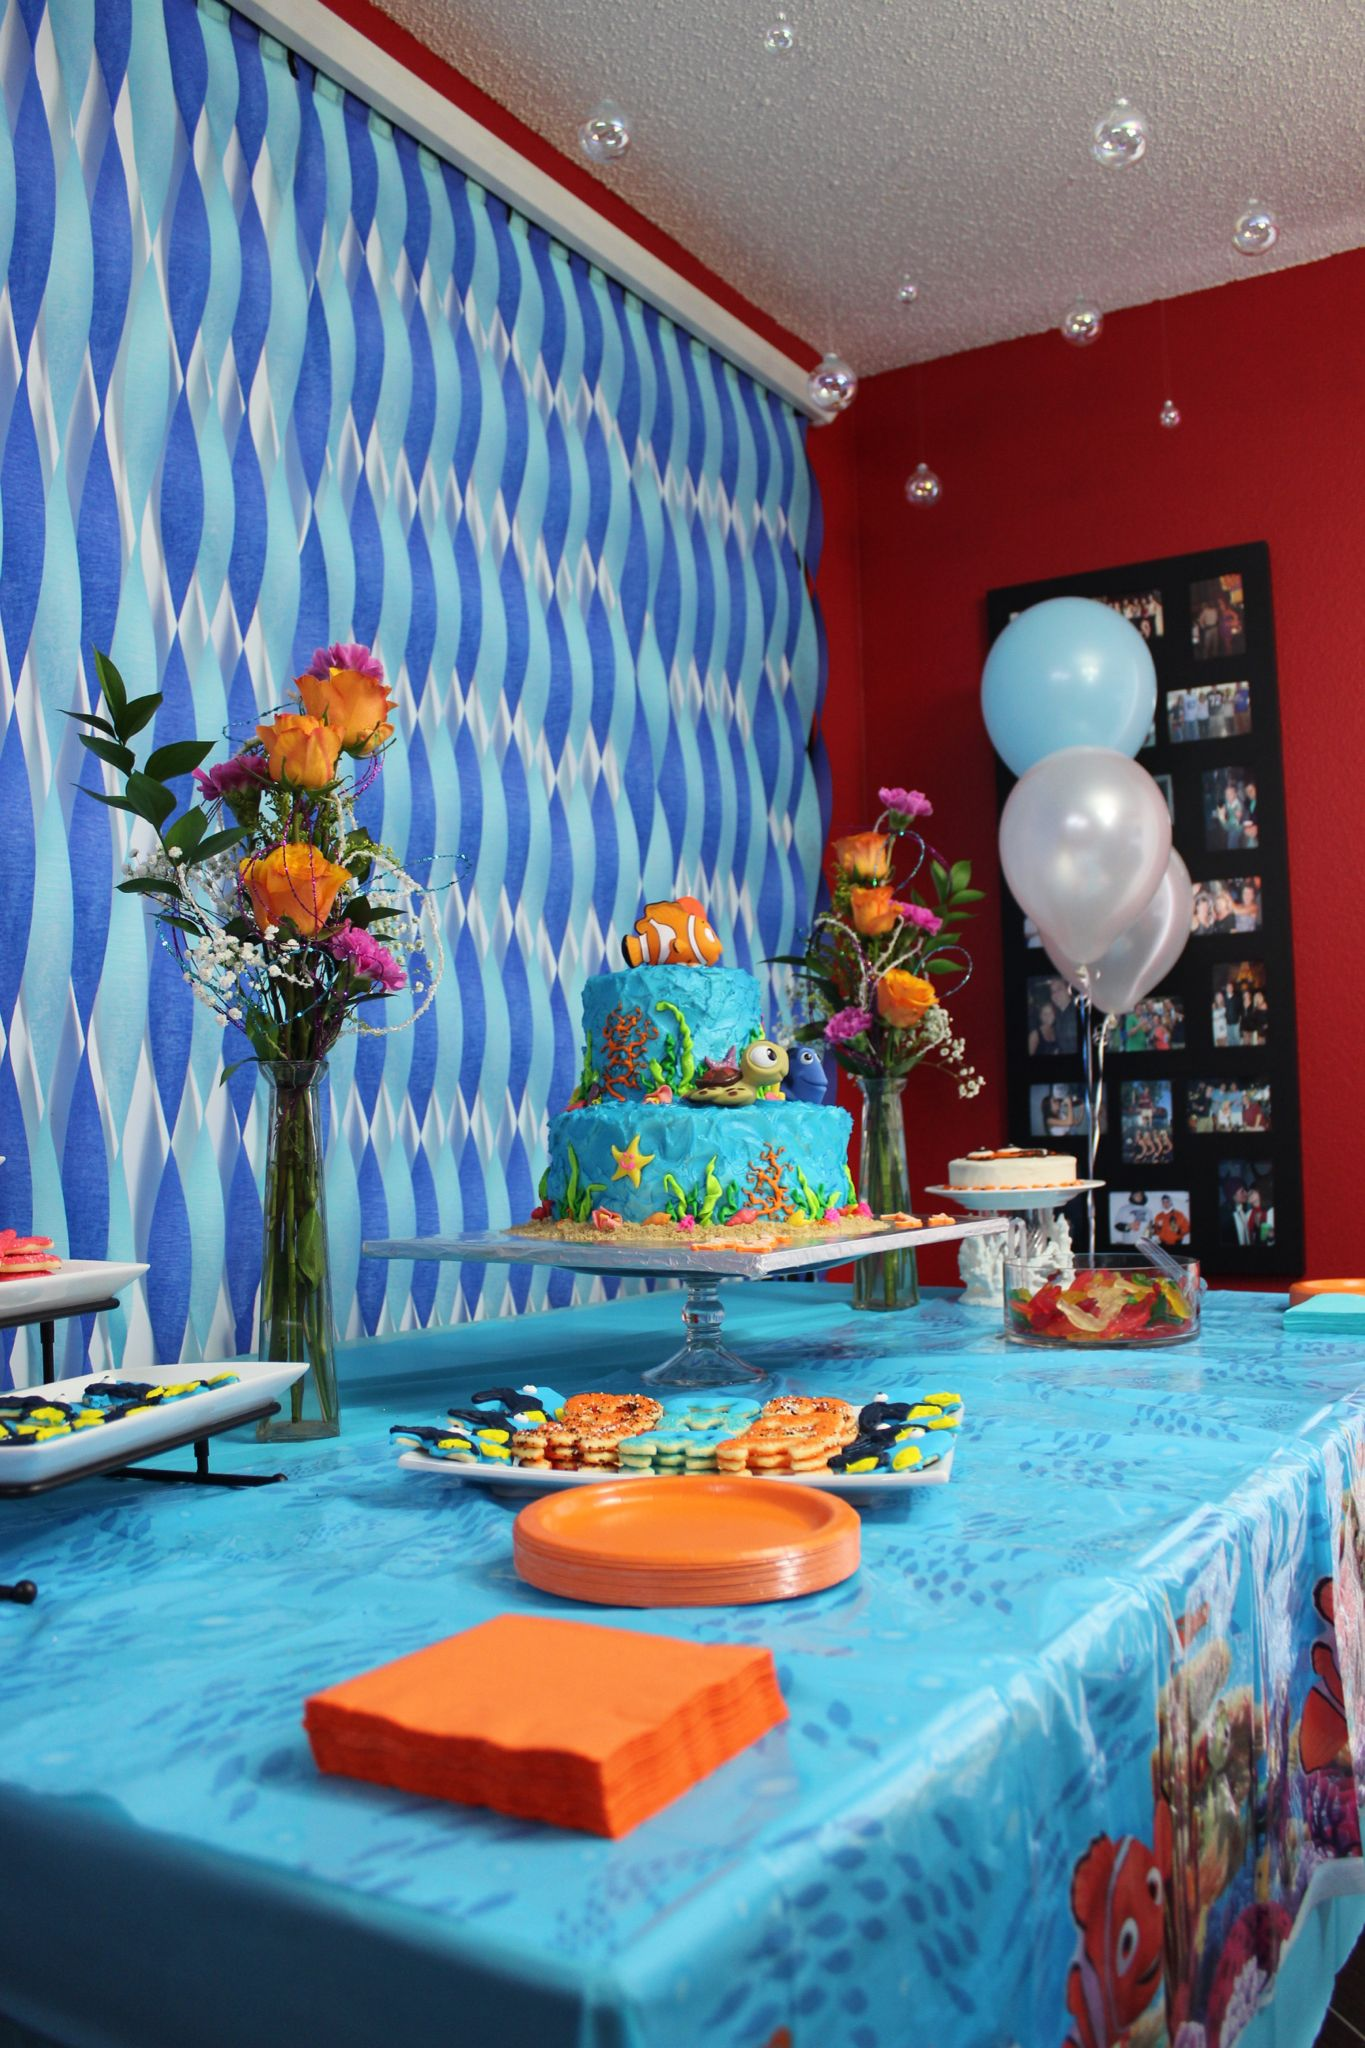 Birthday Cake Table Decoration Ideas : Cake / dessert table decorations Finding Nemo theme party ...